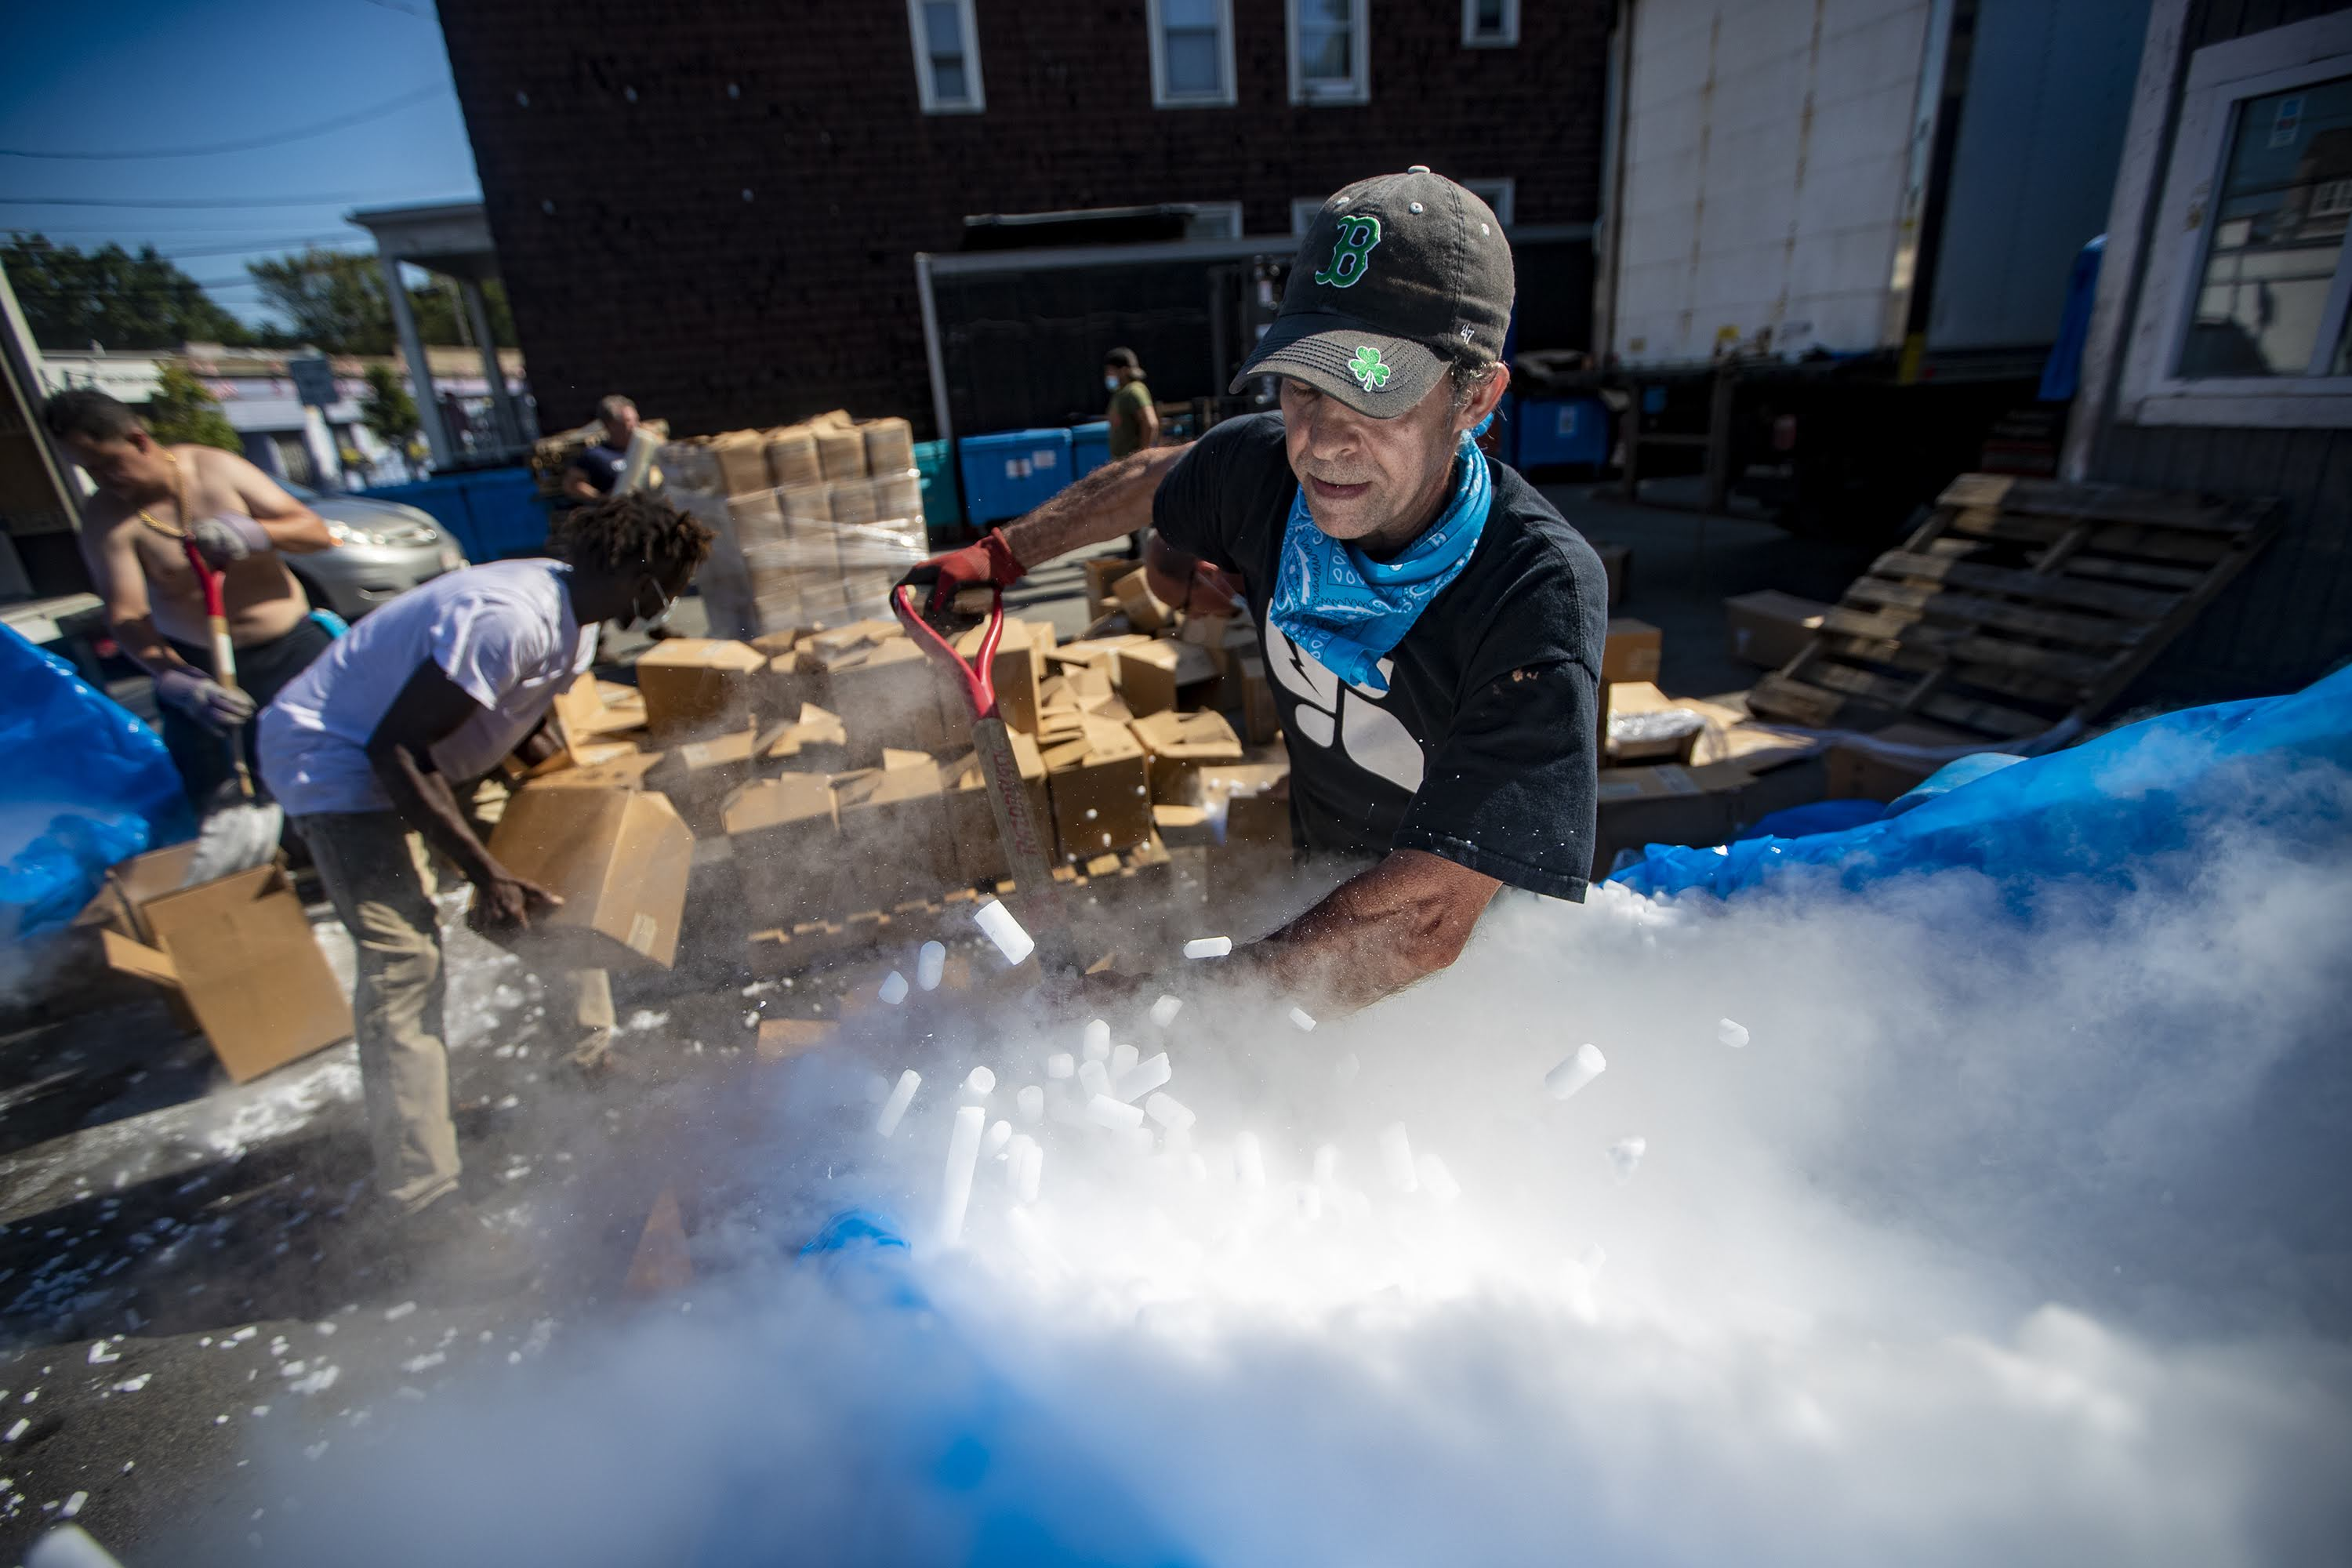 Workers at Acme Ice Company in Cambridge load 50,000 pounds of dry ice into boxes to be shipped out to various pharmaceutical companies in the area for storing vaccine samples of COVID-19. (Jesse Costa/WBUR)